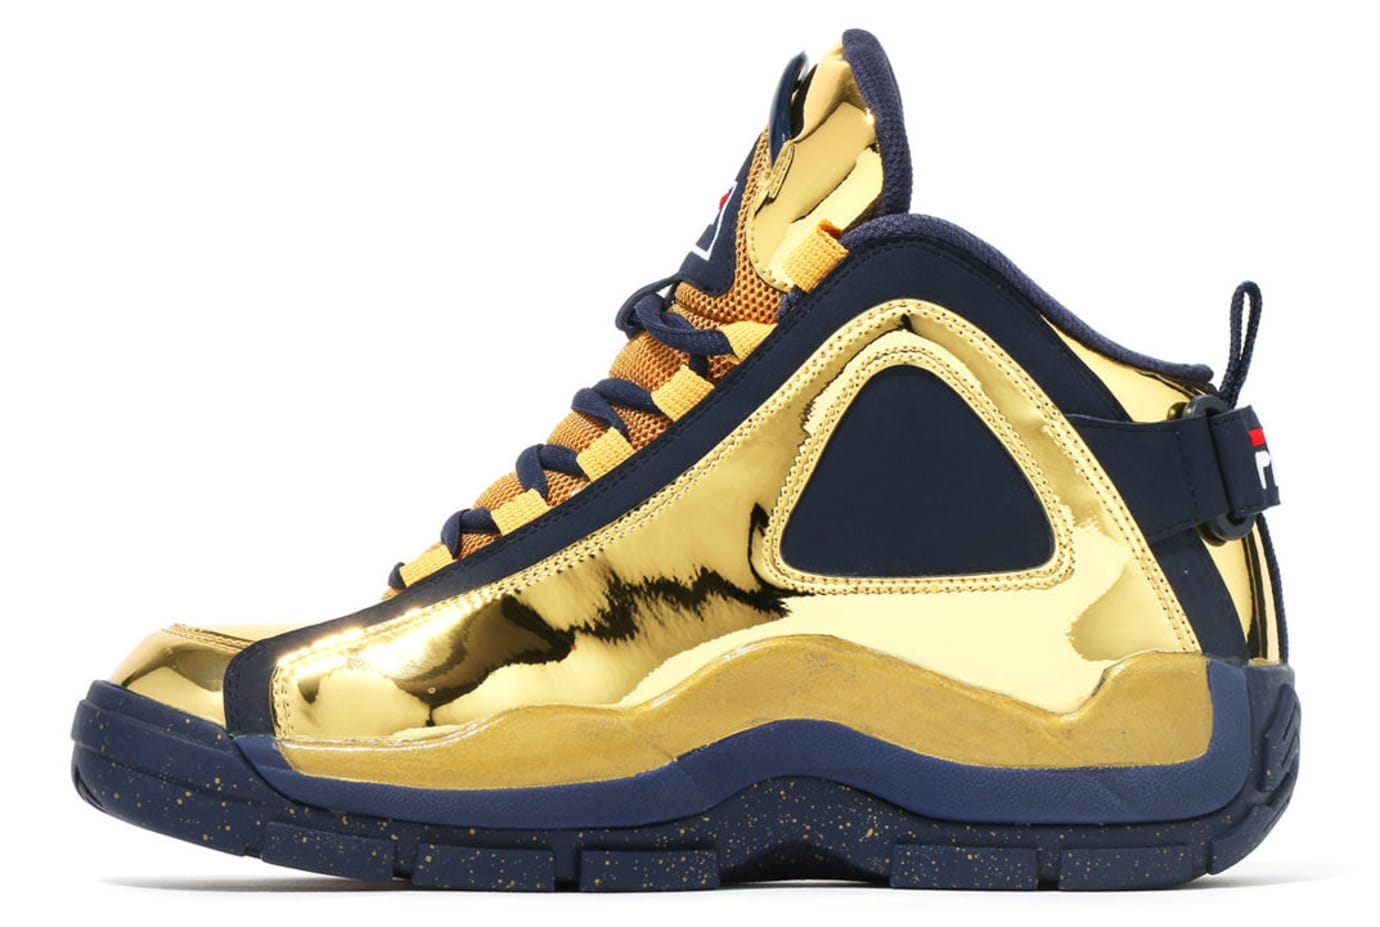 Kinetics x Fila 96 Grant Hill Gold Release Date Medial